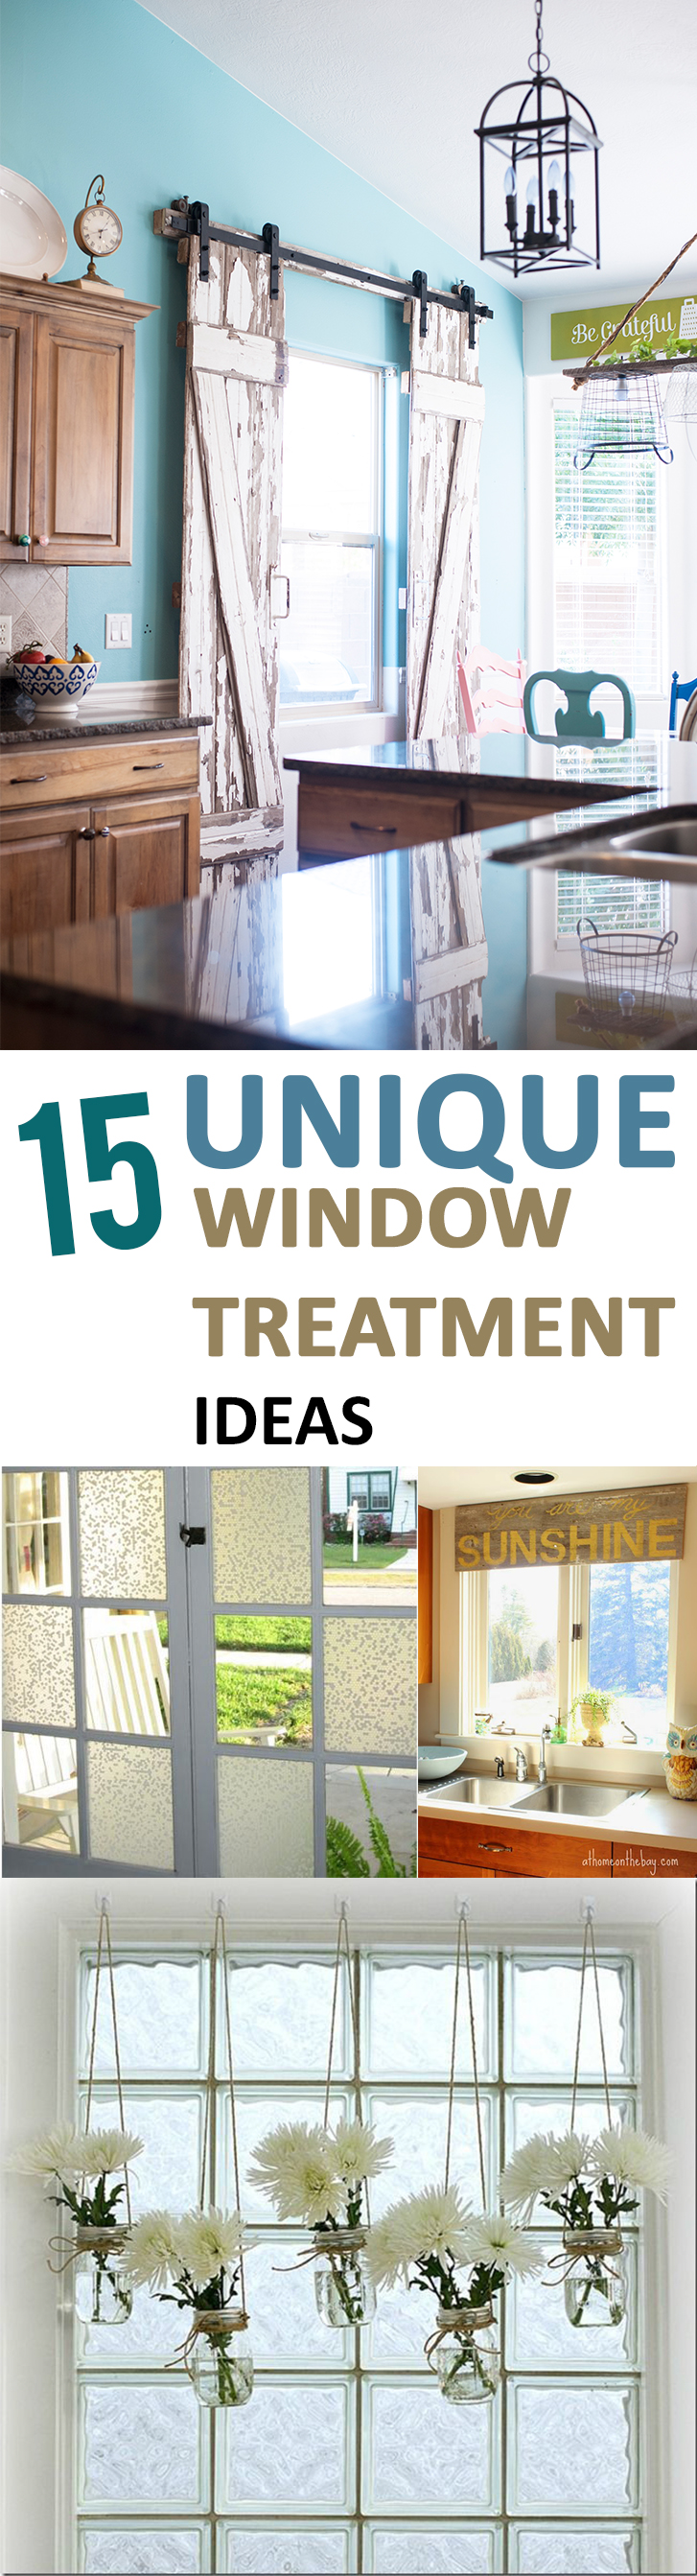 15 unique window treatment ideas